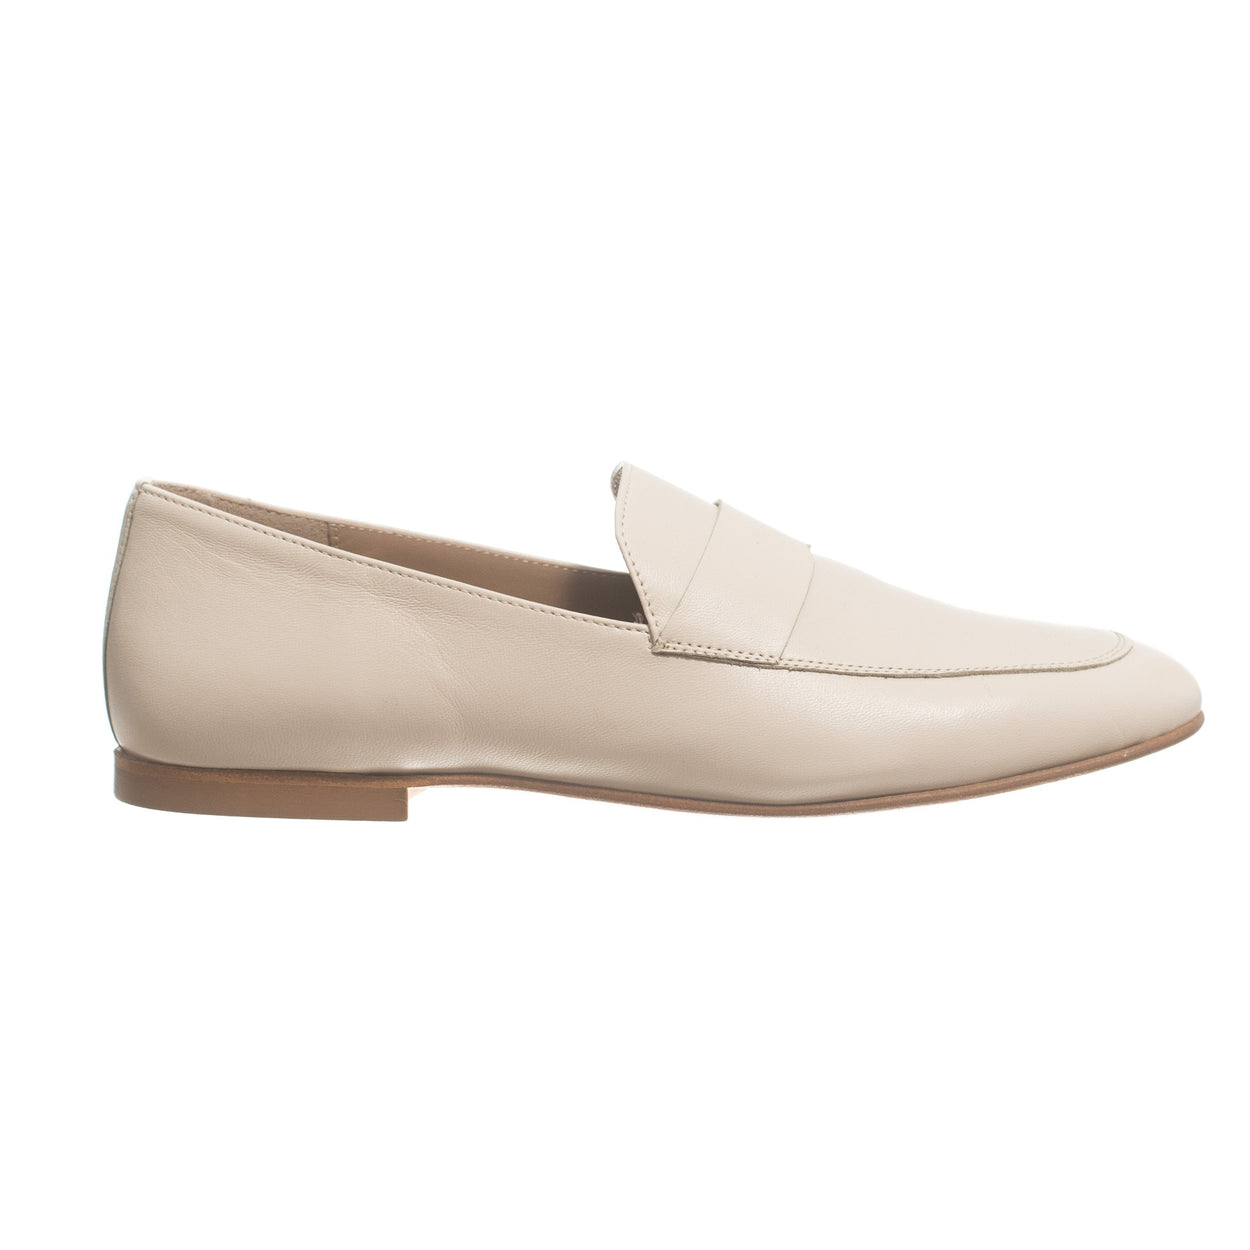 Brindisi Loafers